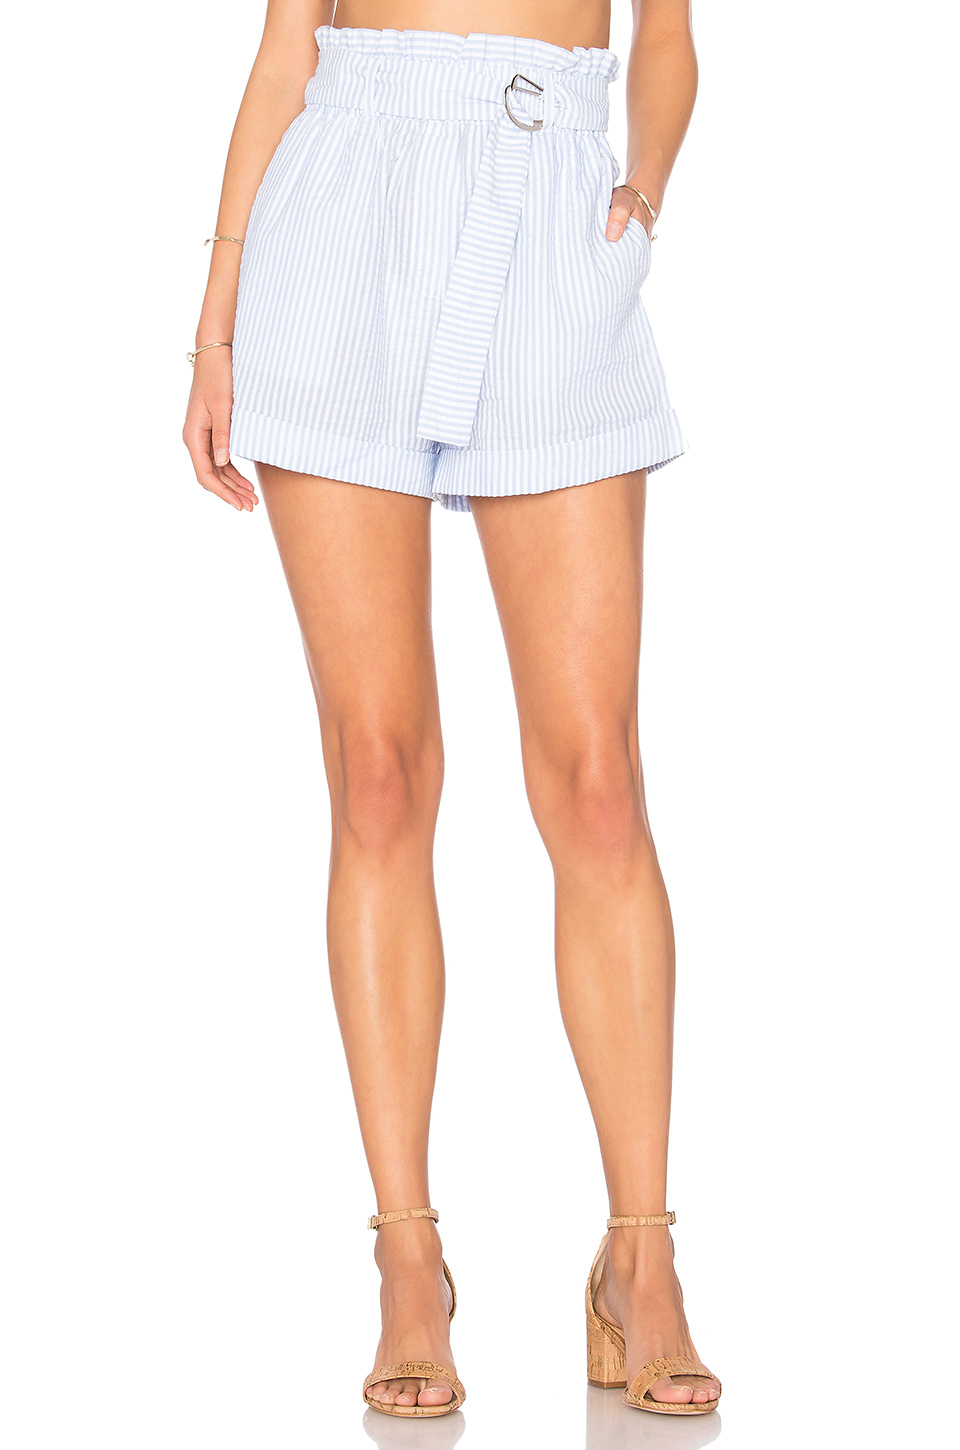 MINKPINK Striped D Ring Paperbag Shorts in Light Blue & White